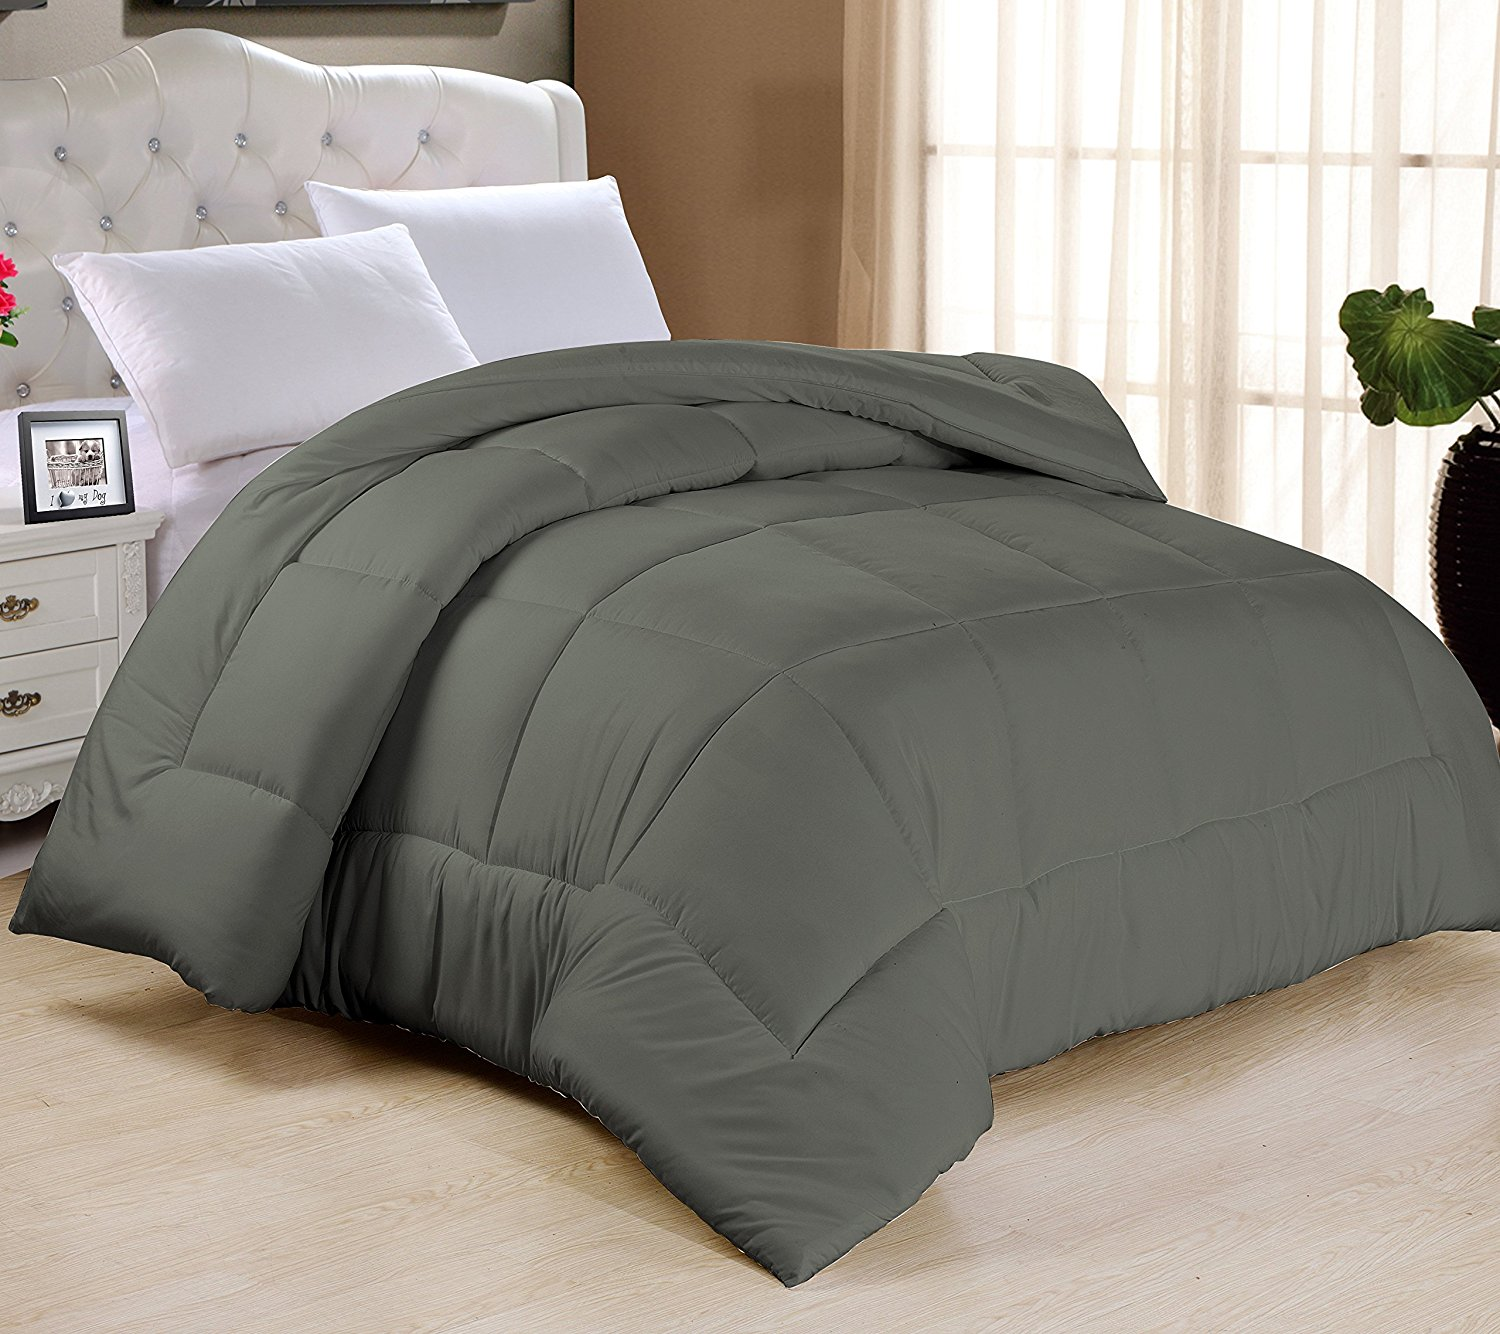 Comforters For Winter Best Goose Down Comforter Reviews